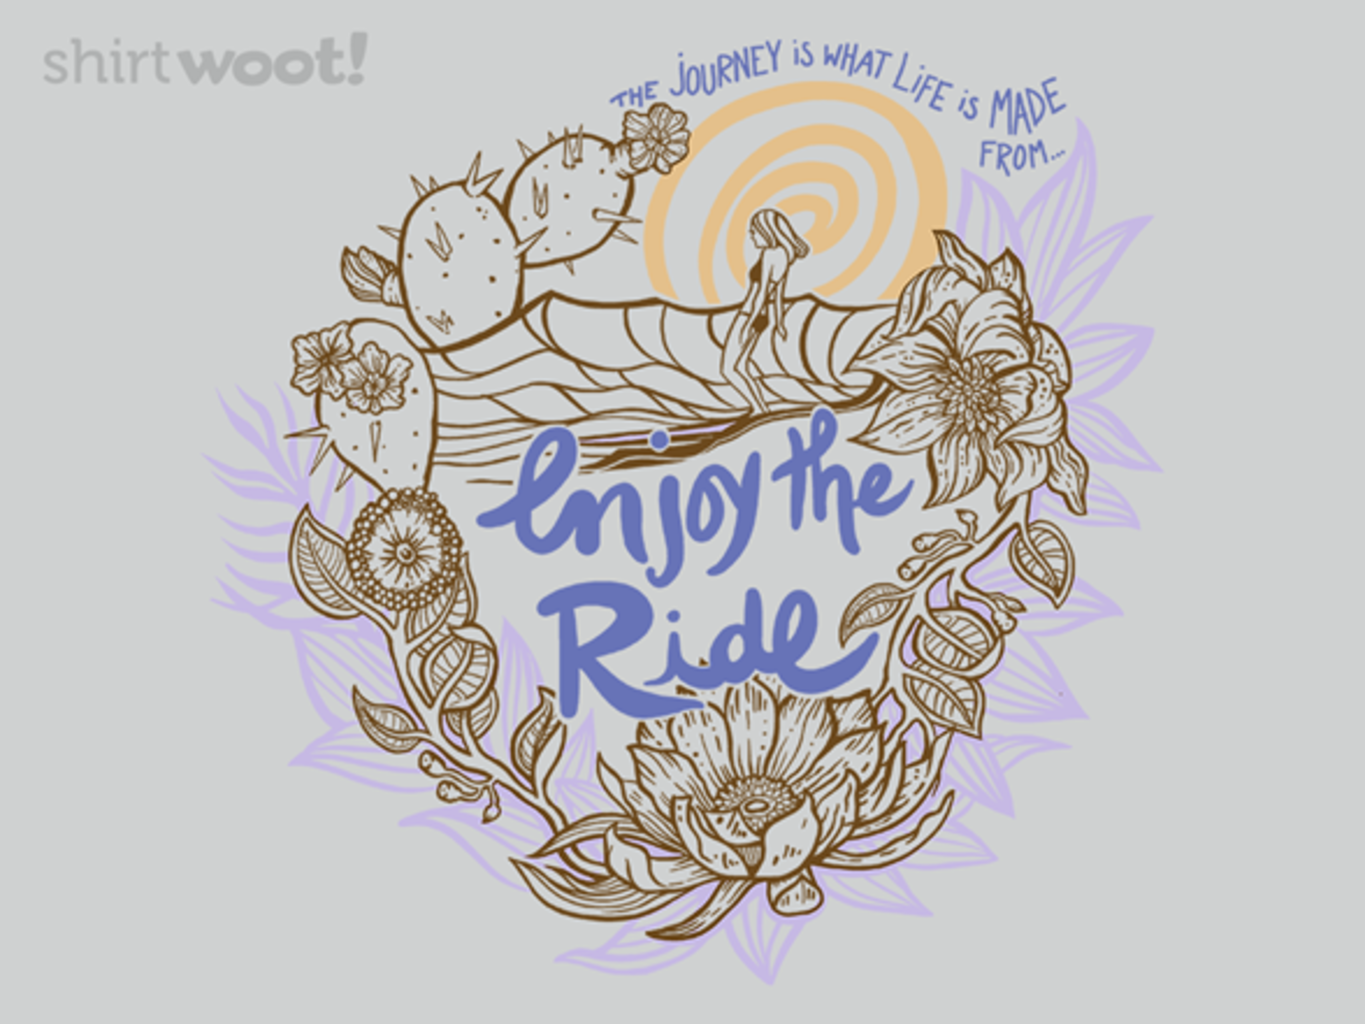 Woot!: Enjoy the Ride - $15.00 + Free shipping